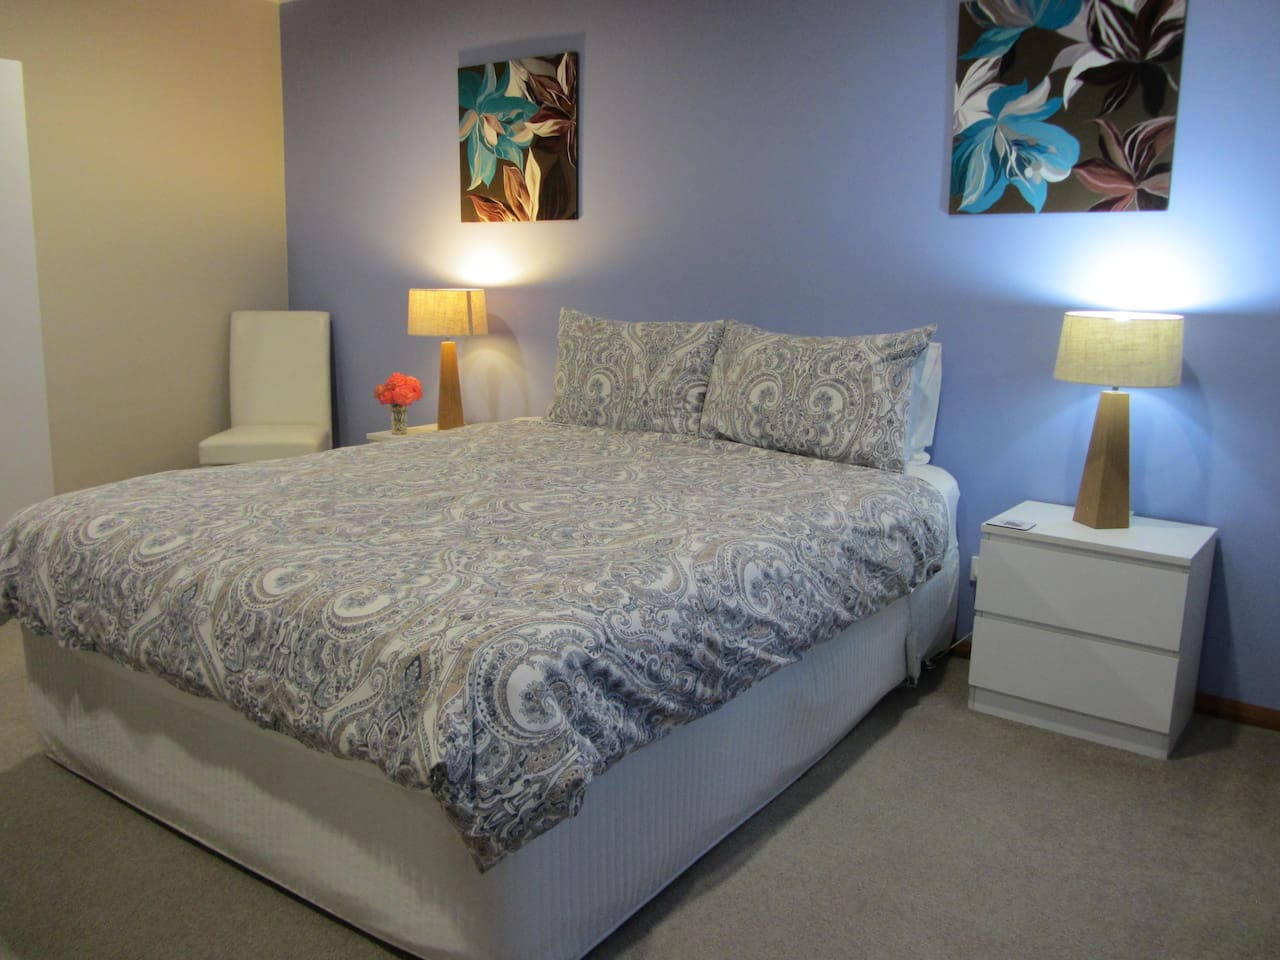 Spacious and comfortable queen bedded room